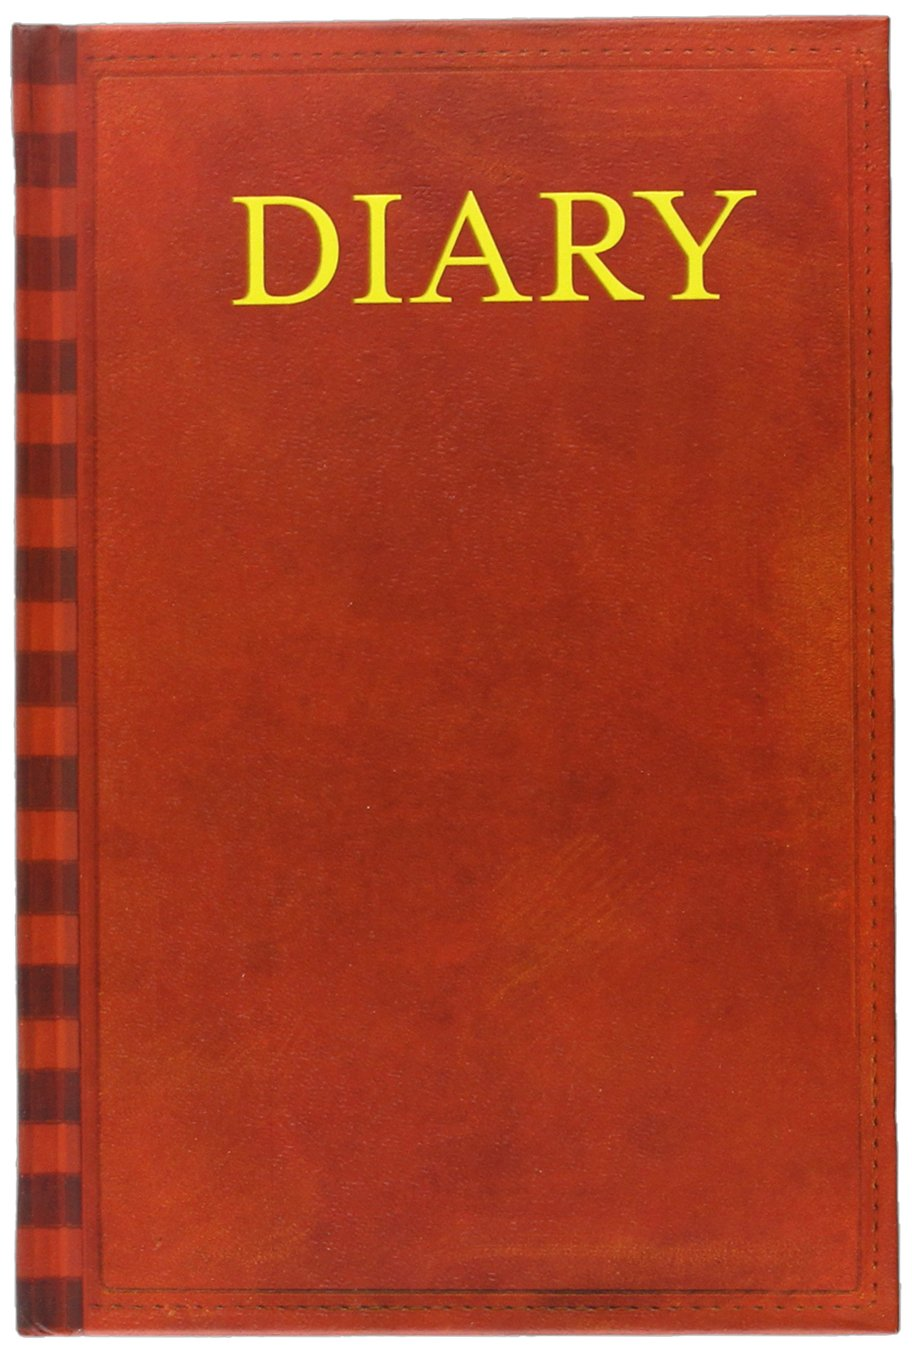 Diary of a wimpy kid book journal mudpuppy jeff kinney diary of a wimpy kid book journal mudpuppy jeff kinney 9780735329874 amazon books solutioingenieria Gallery